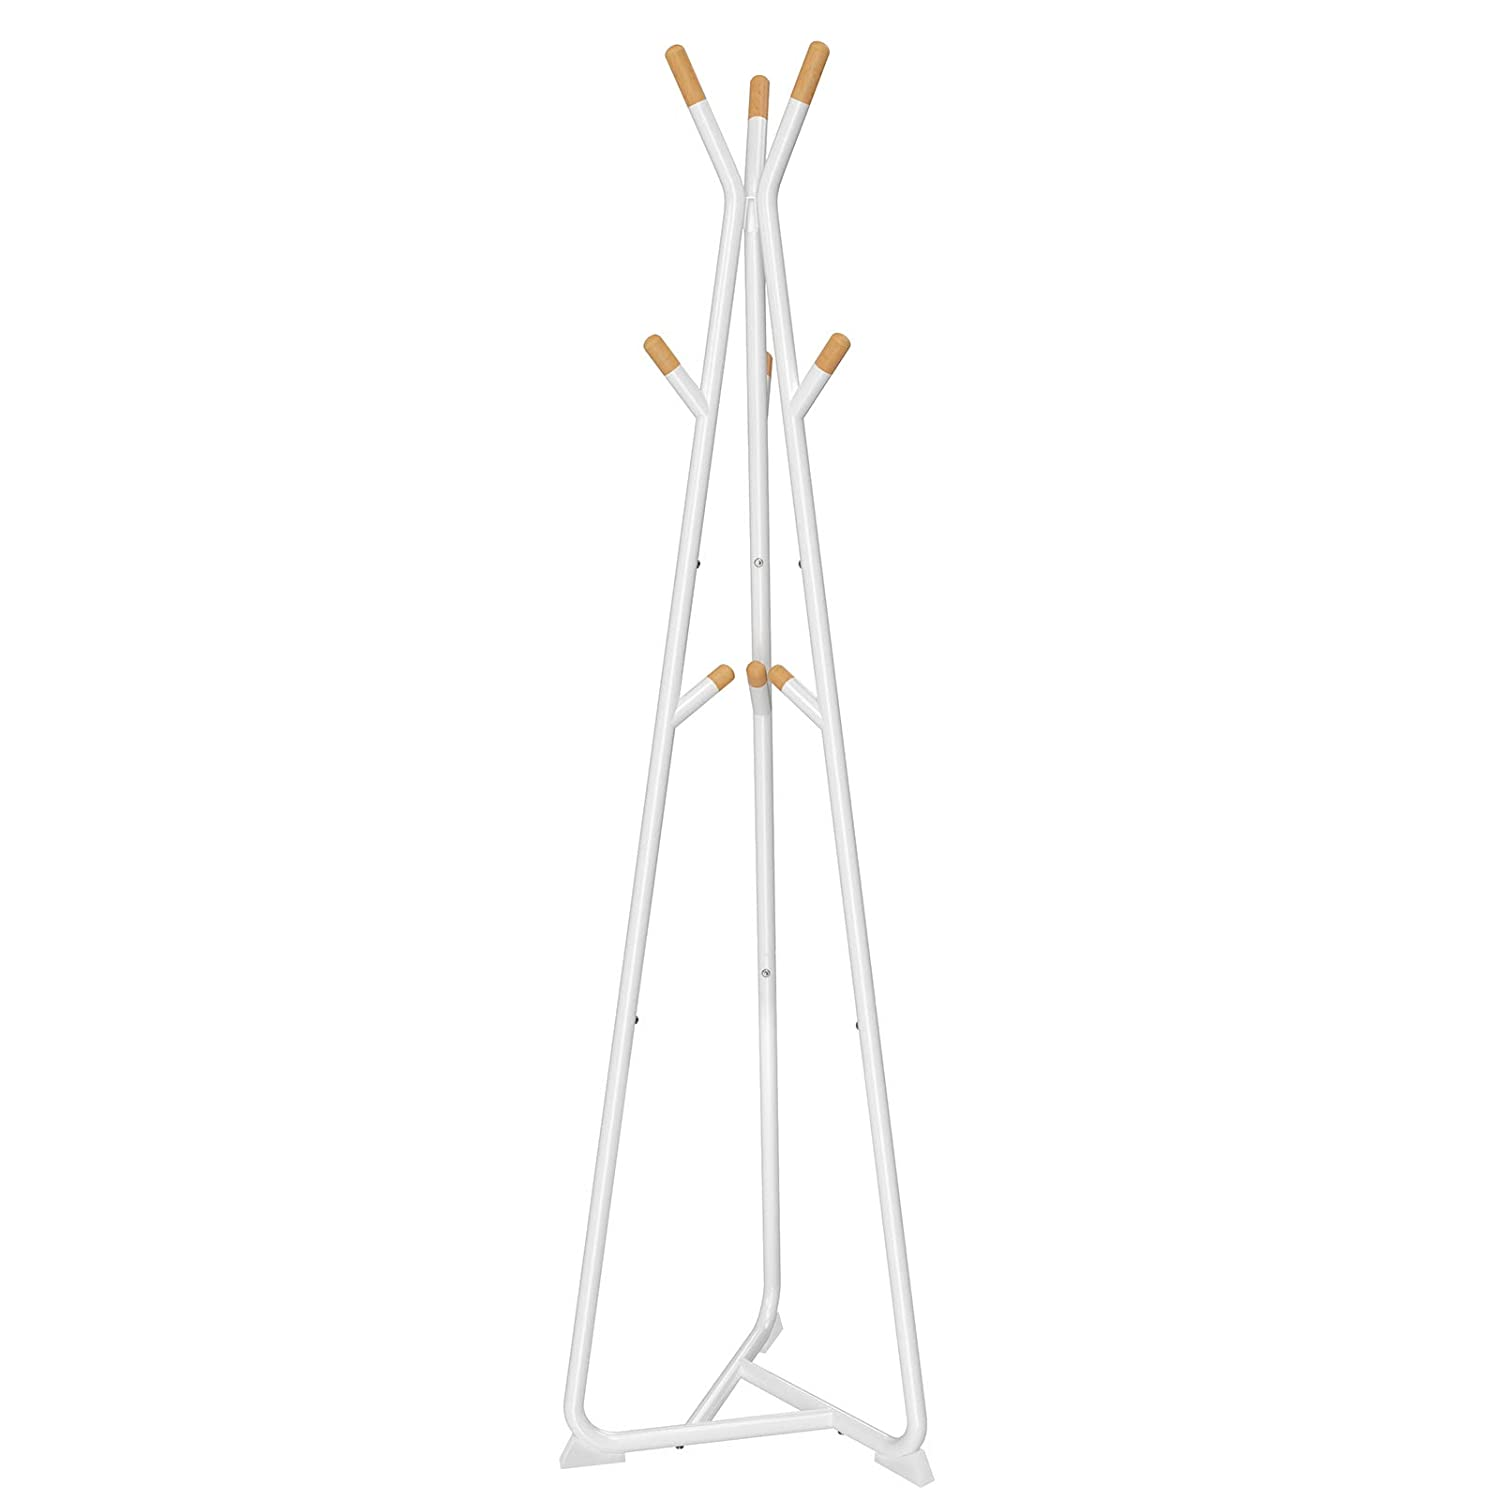 SONGMICS Coat Rack Stand, Coat Tree, Hall Tree Free Standing, with 9 Beech Wood Hooks, for Clothes, Hat, Bag, White, Natural Grain, RCR15WY